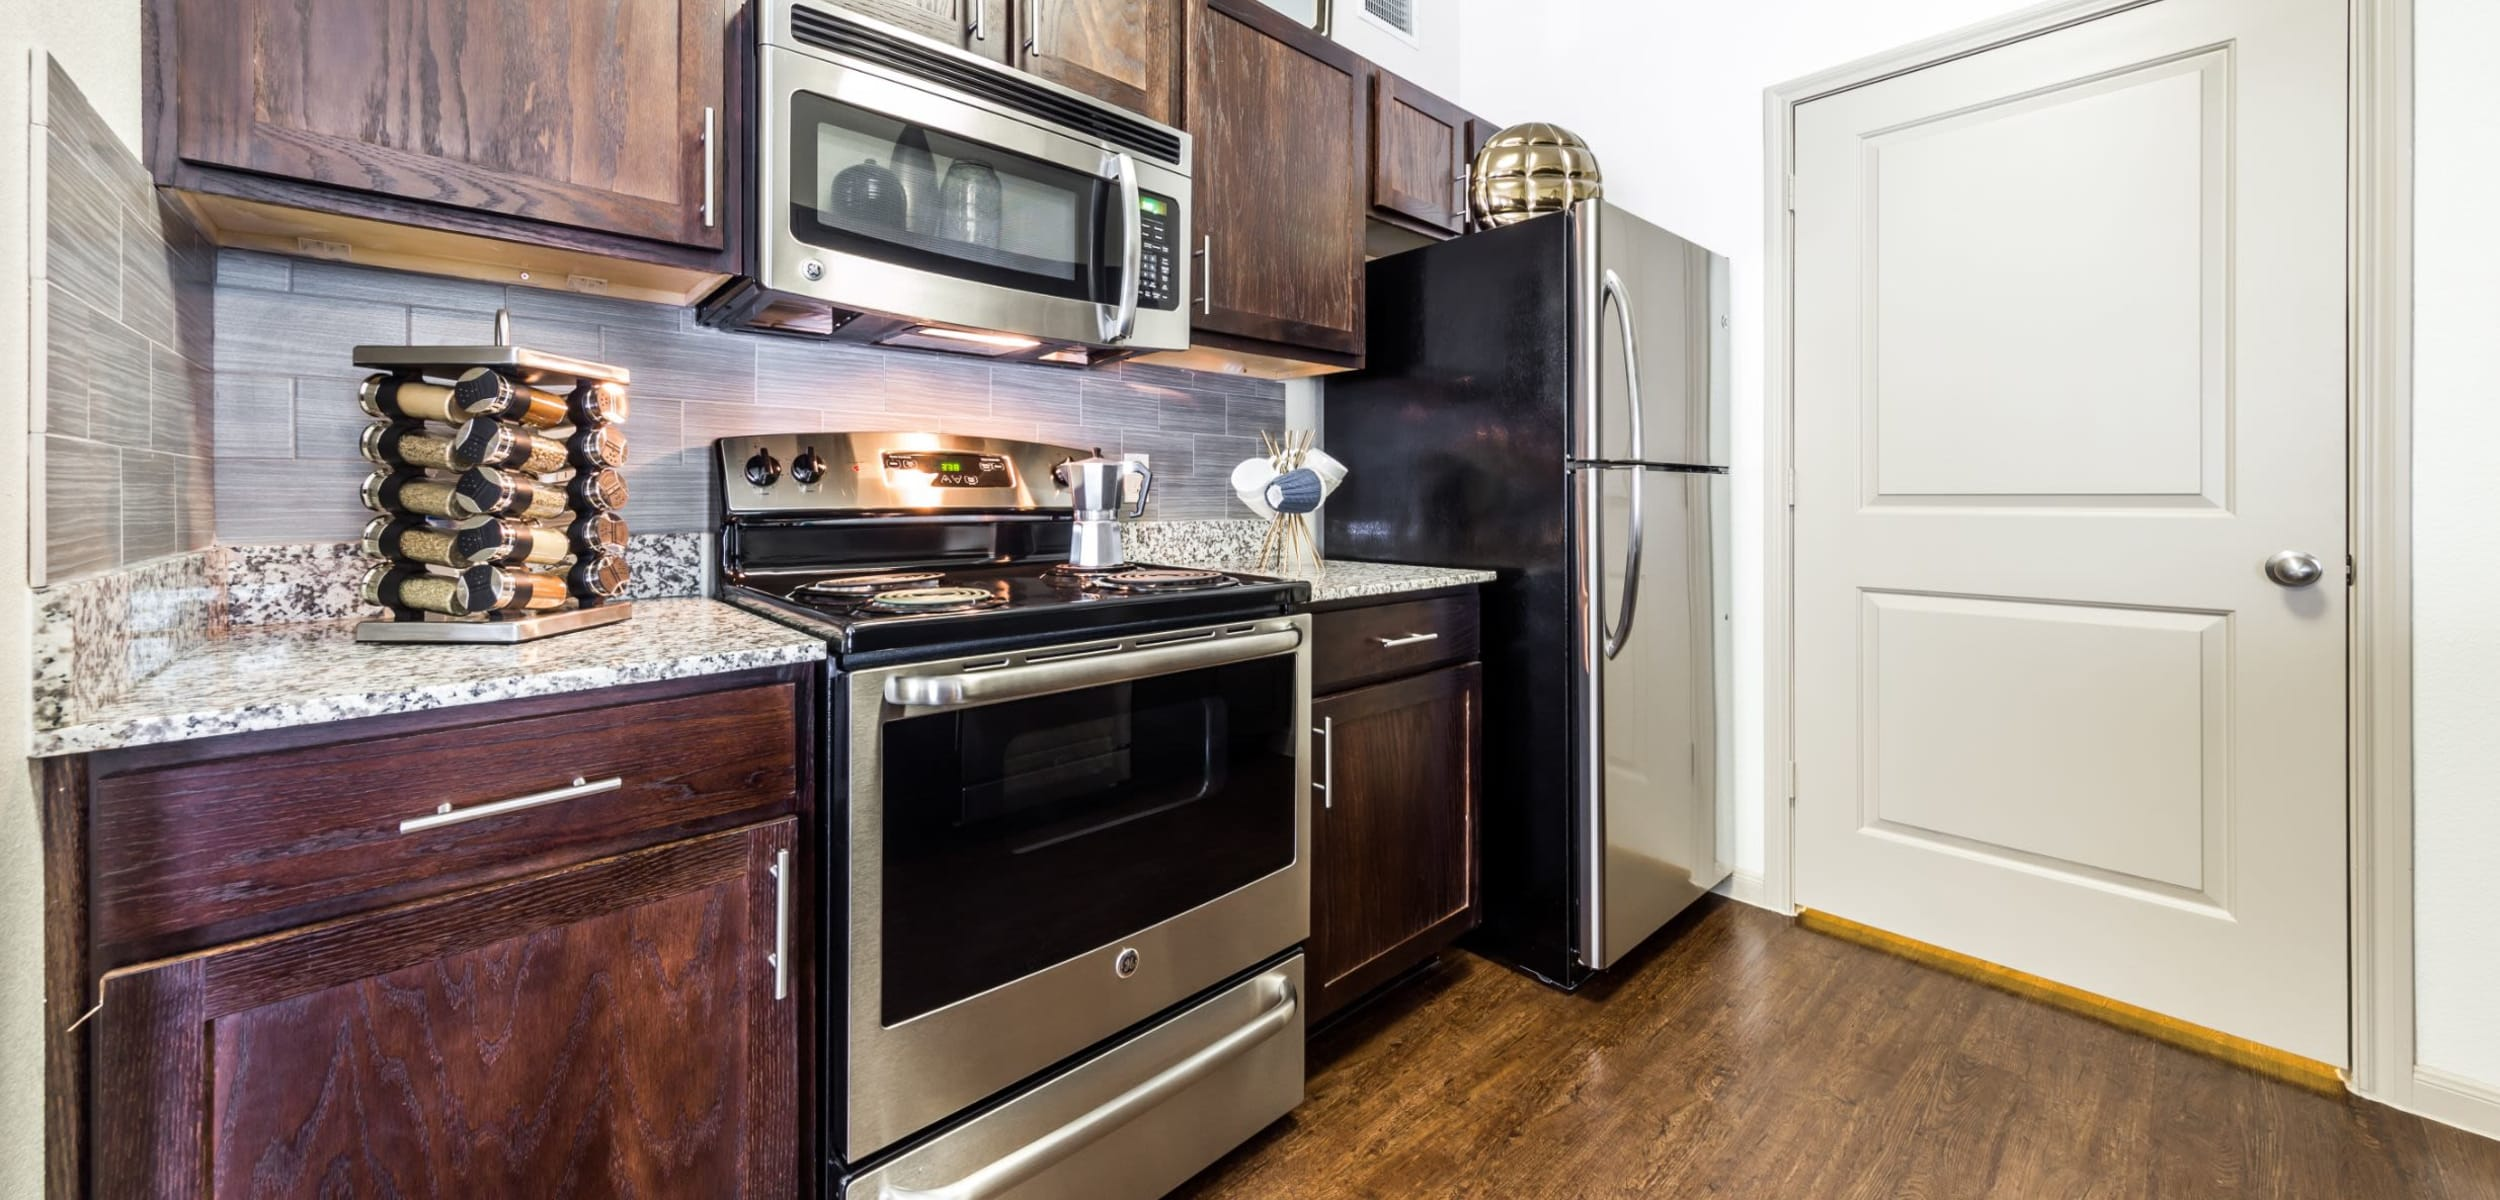 Modern kitchen with stainless steel appliances at Marquis on Lakeline in Cedar Park, Texas